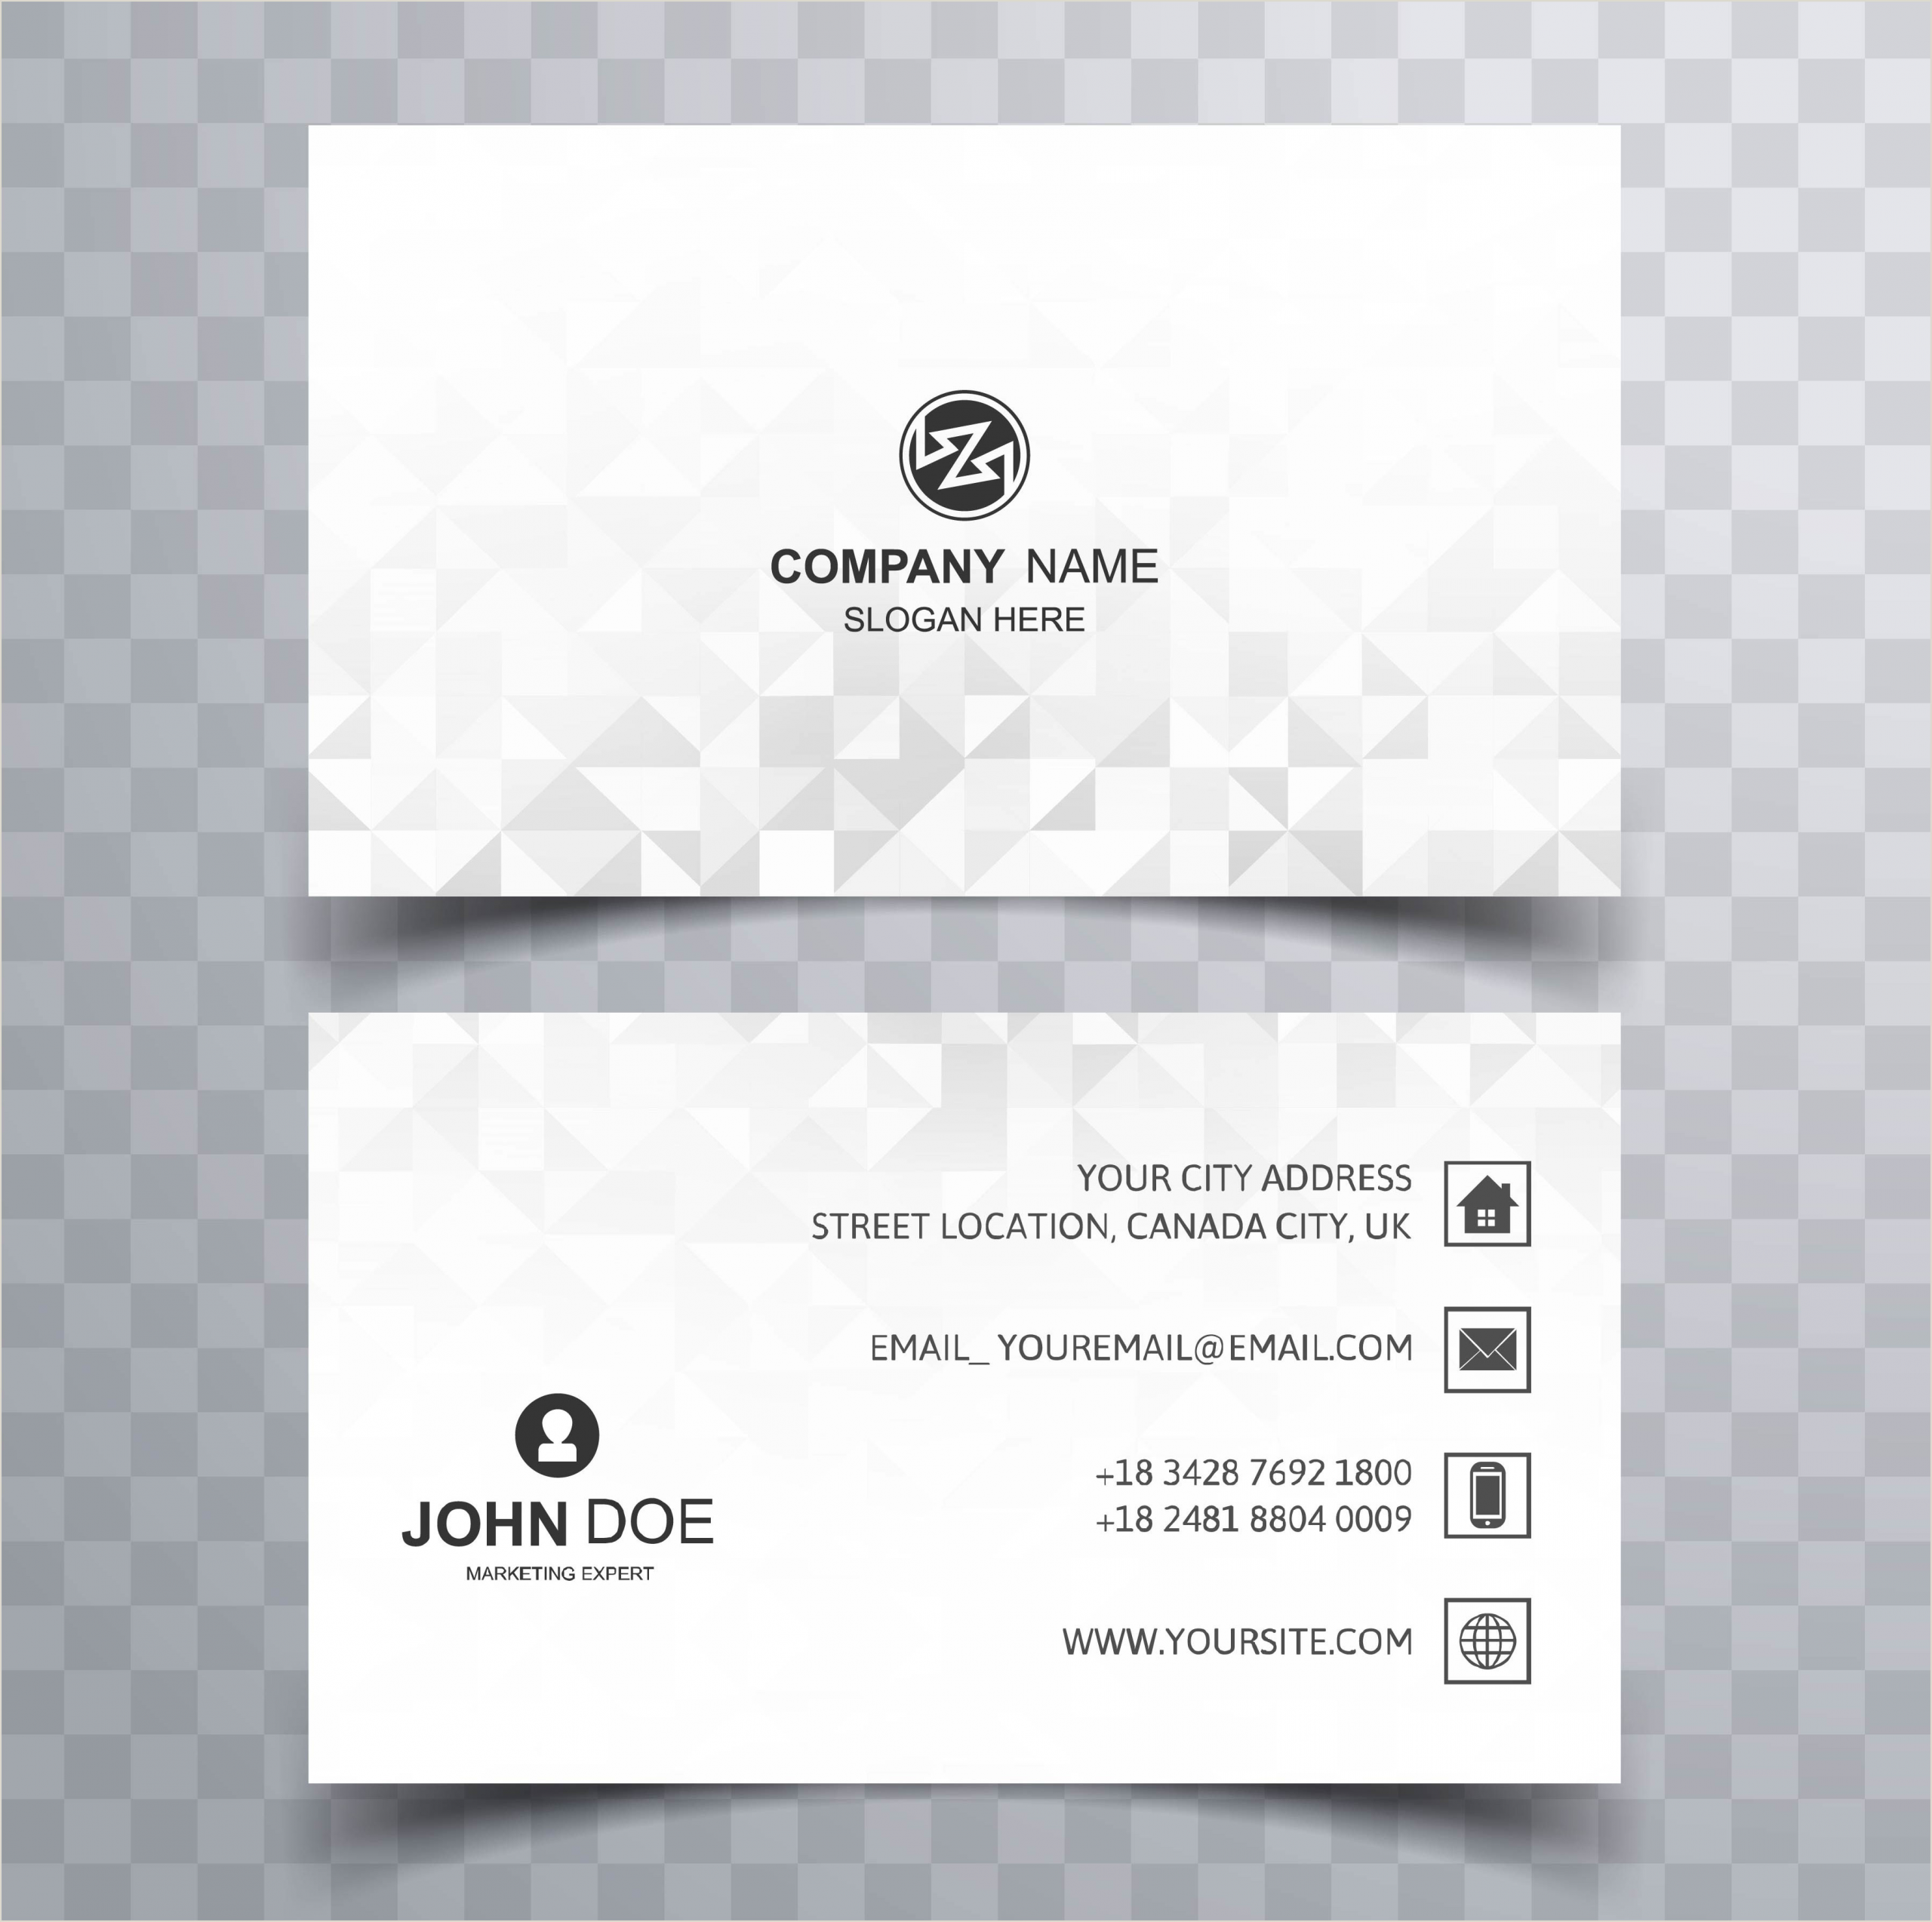 Call Card Designs Calling Card Free Vector Art 54 705 Free Downloads